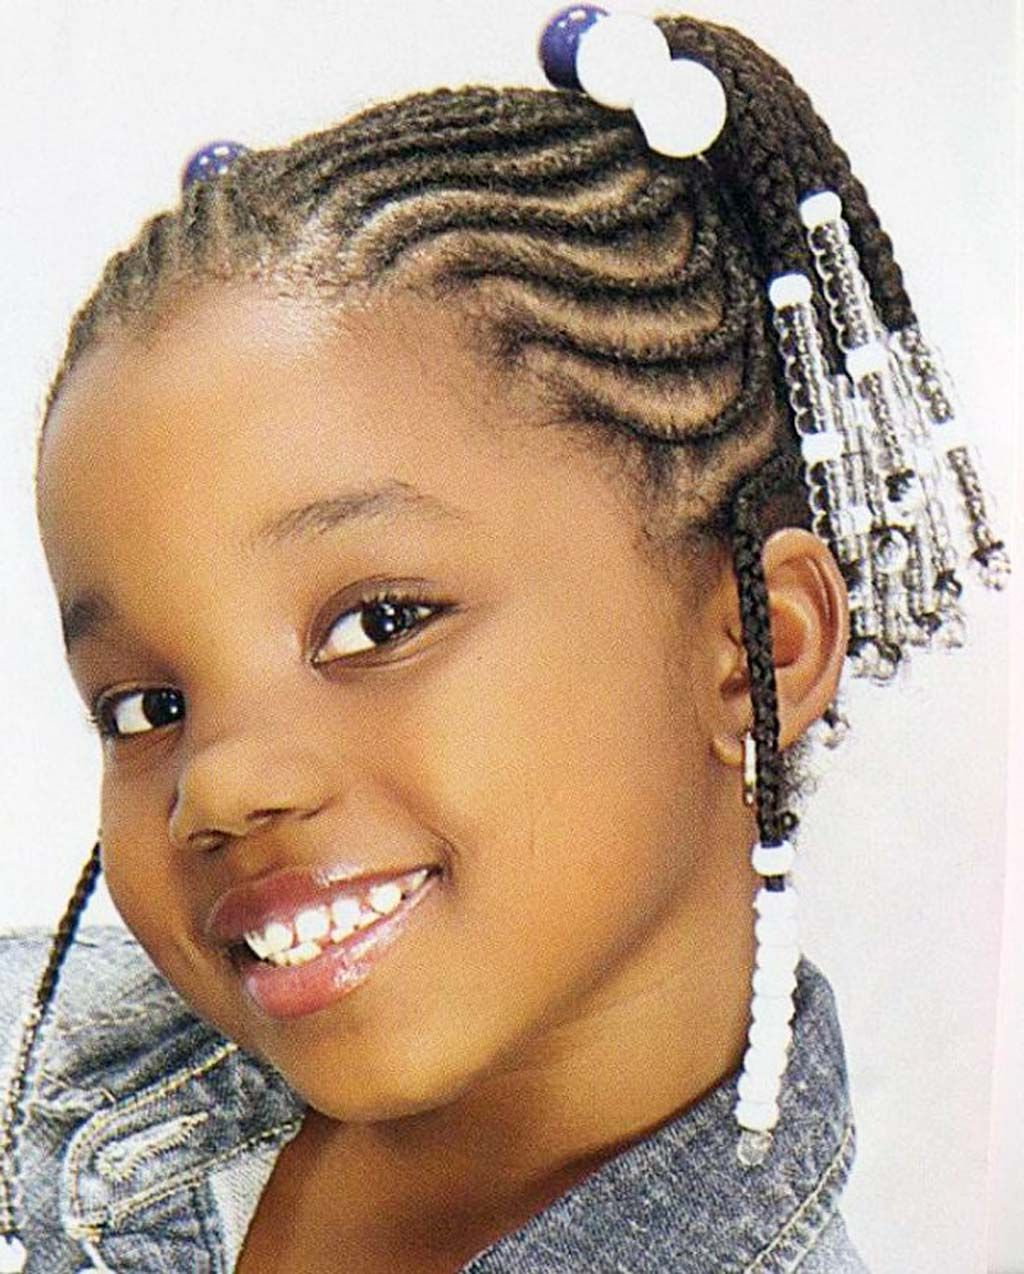 ? 24+ Unique Lil Girl Hairstyles Braids: Emejing Short Hairstyles Inside Black Little Girl Short Hairstyles (View 24 of 25)